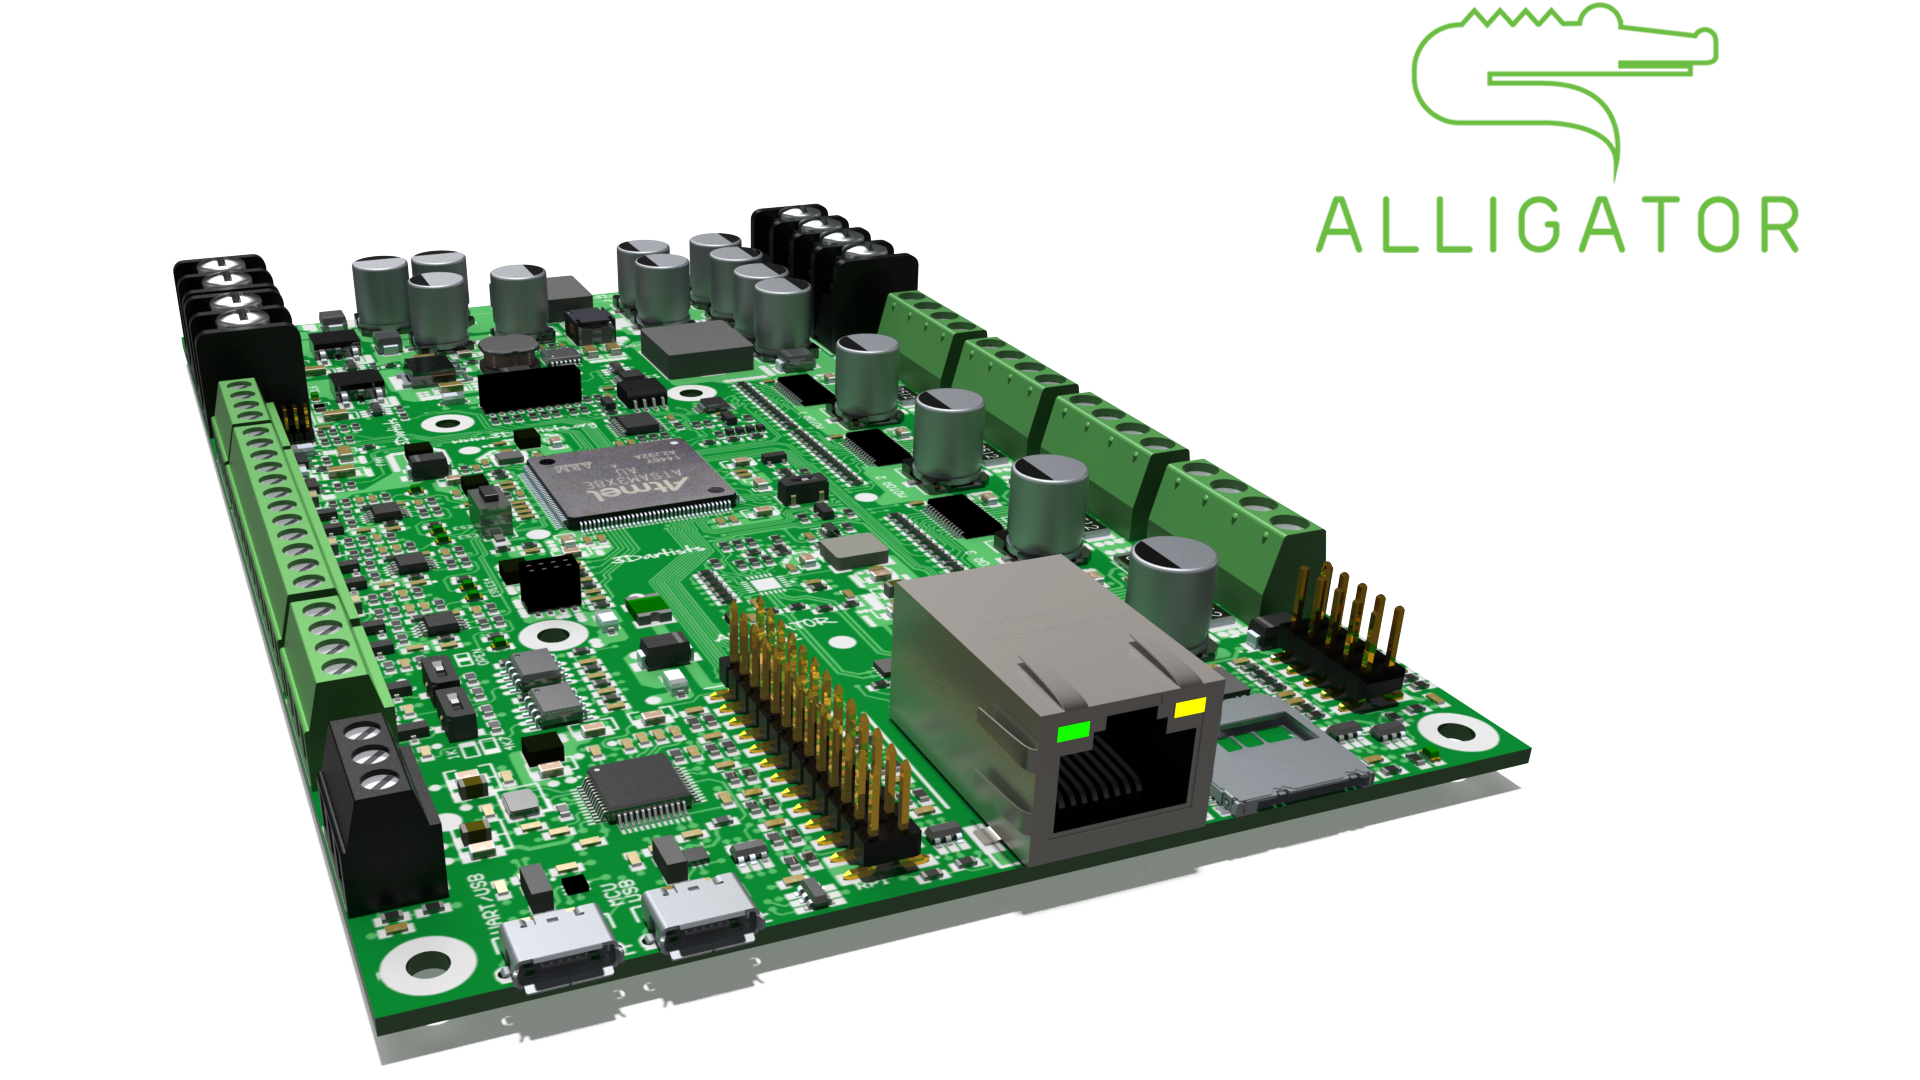 Do You Need an Alligator Board for Your 3D Printer?